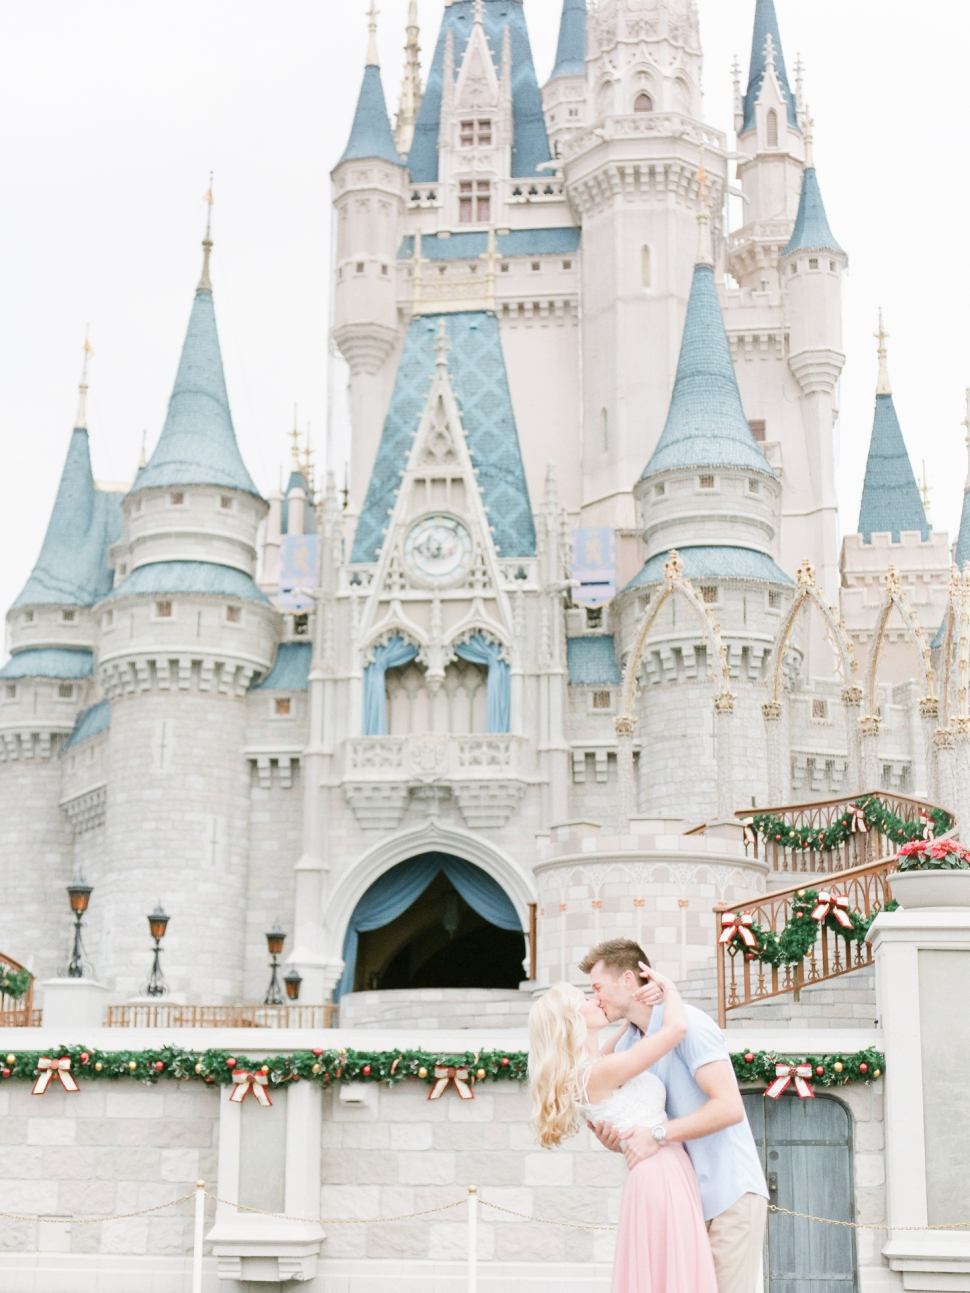 Disney-World-Engagement-Photographer-Cassi-Claire-Disney-World-Orlando-Florida_19.jpg